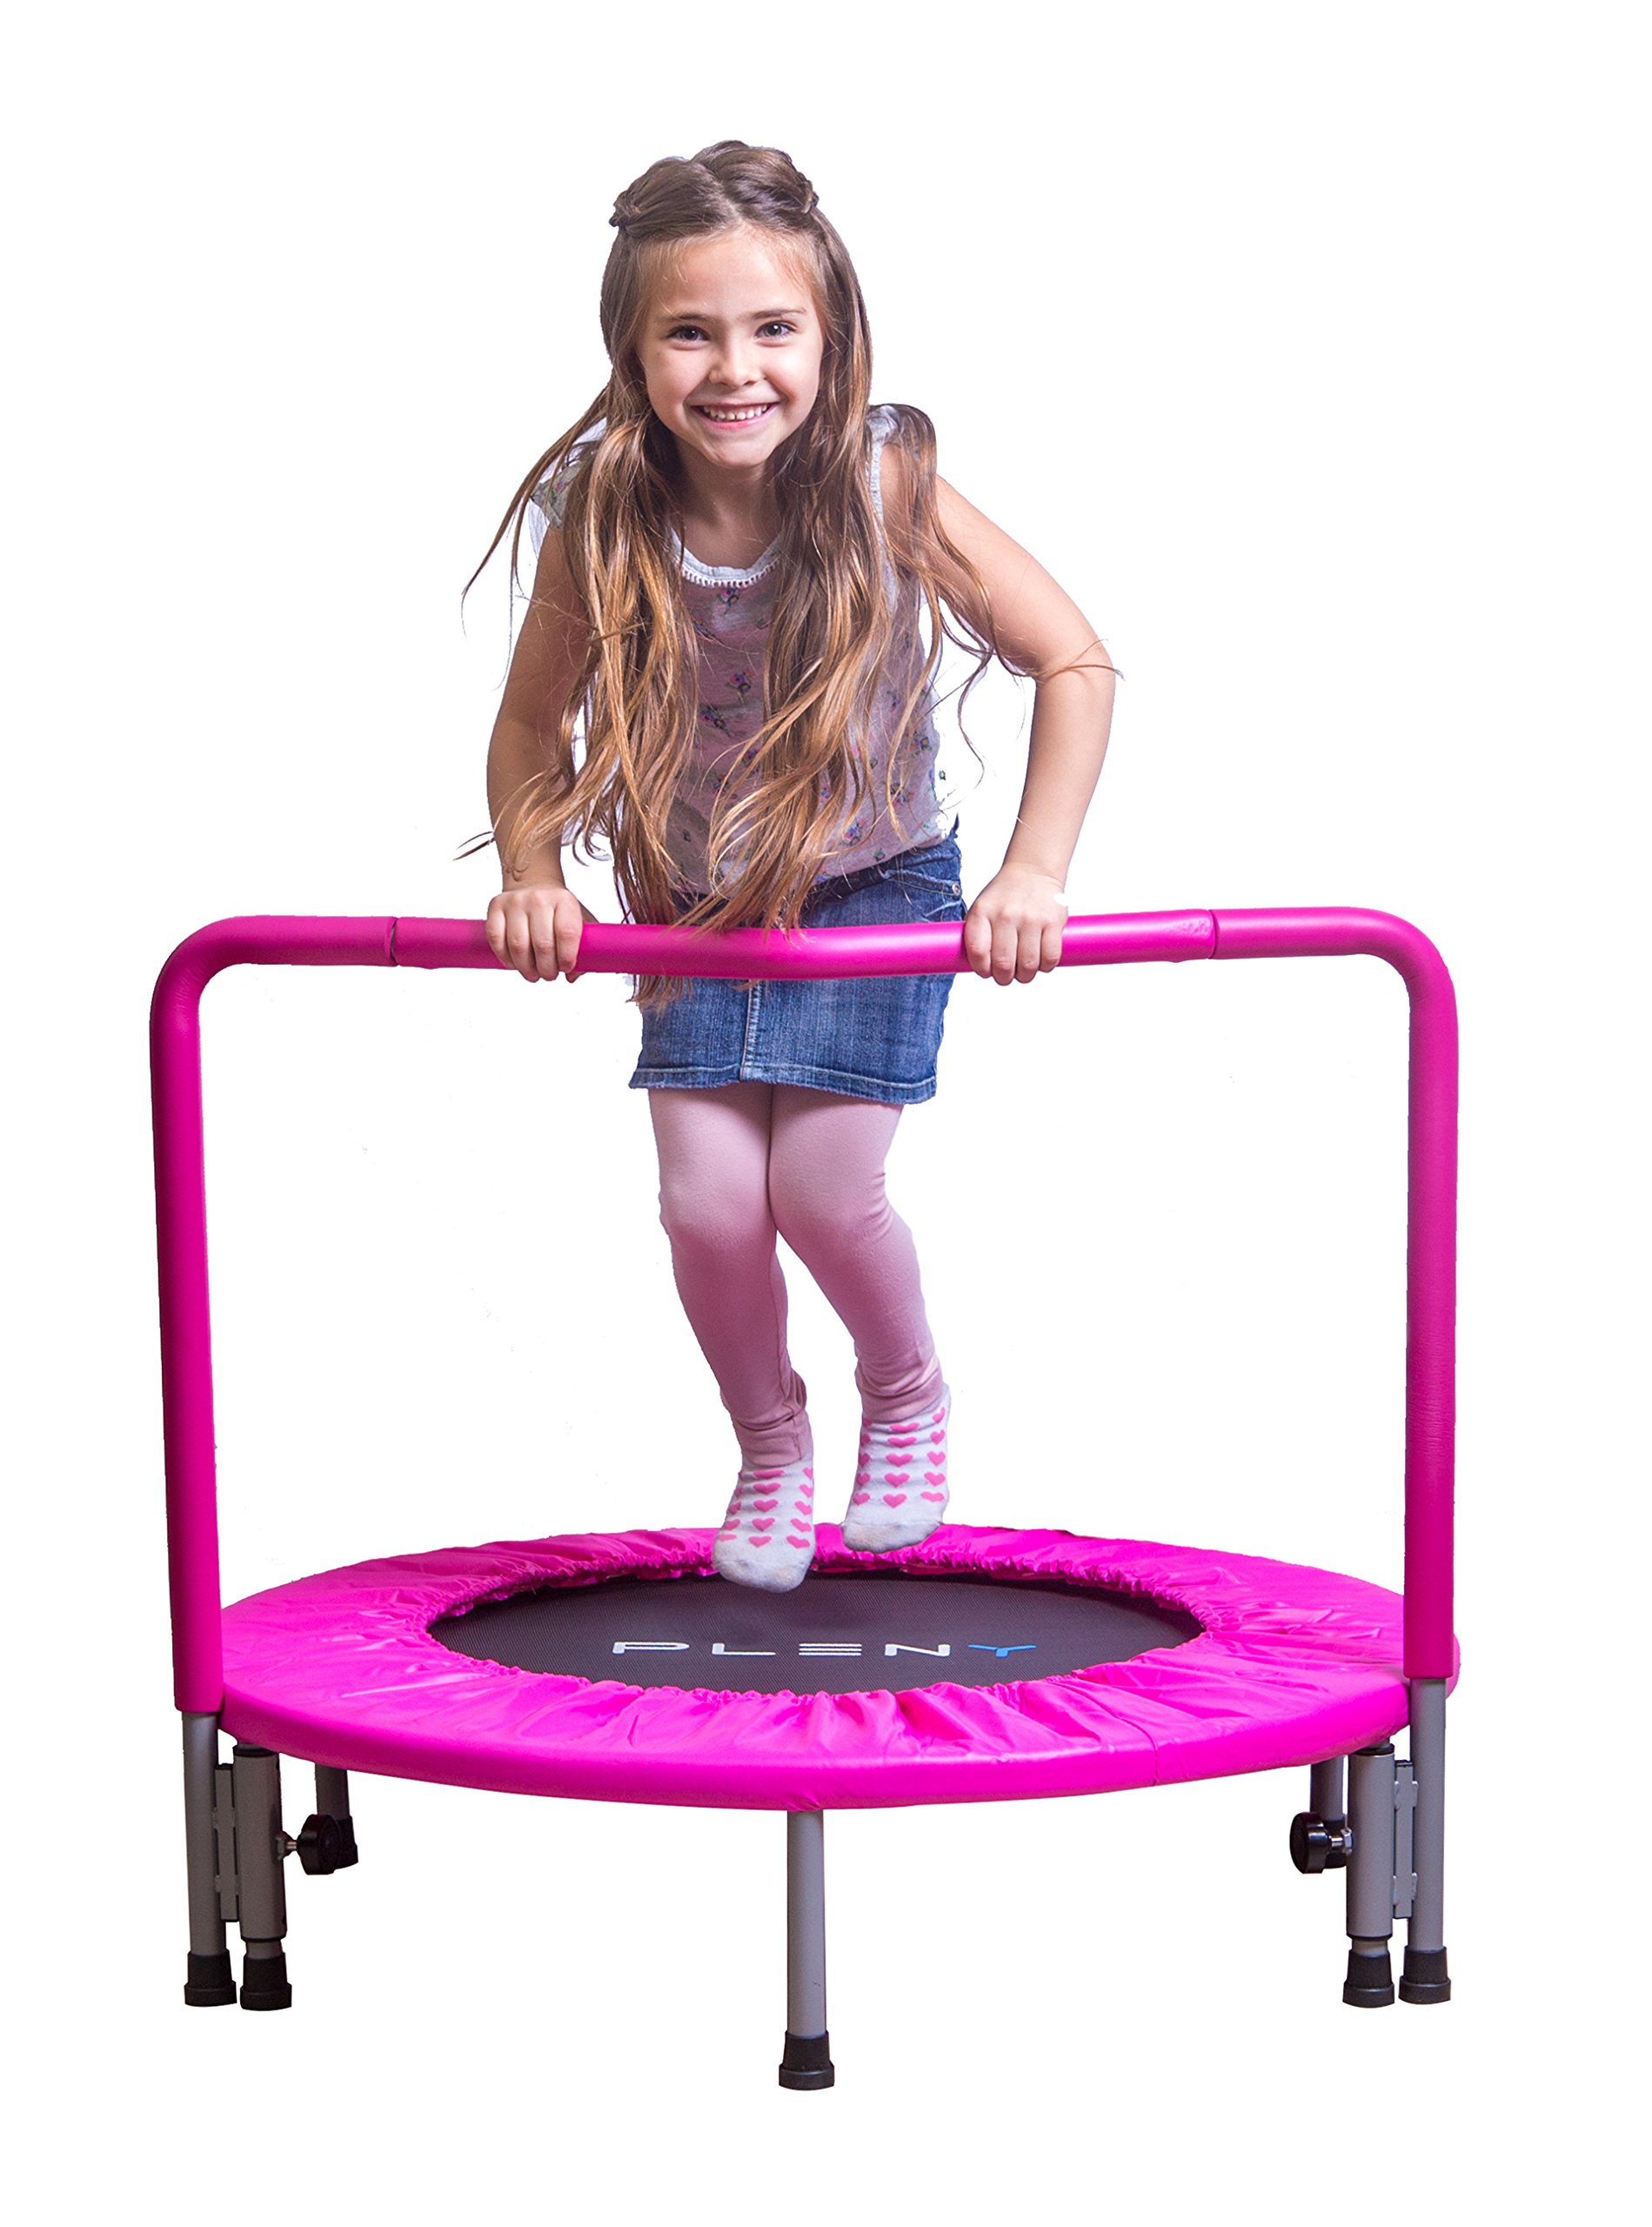 PLENY  36'' Girls Mini Trampoline with Balance Handrail, Exercise Trampoline for Kids (Princess Pink)